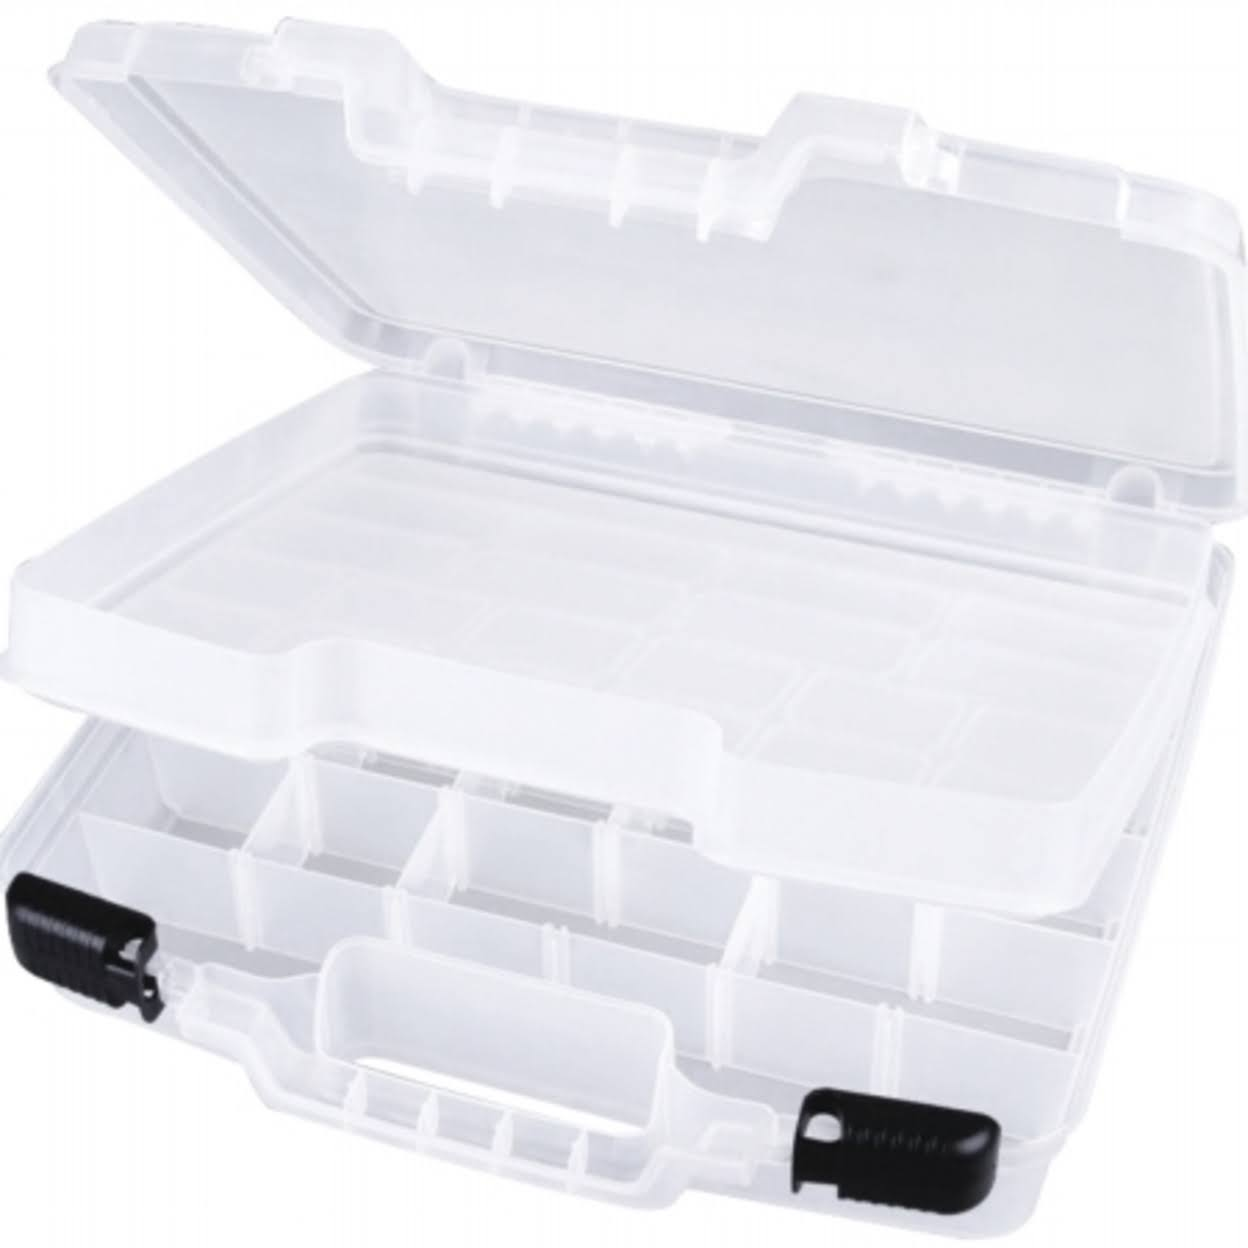 Art Bin Quick View Deep Base Carrying Case - Translucent, 38cm x 8.3cm